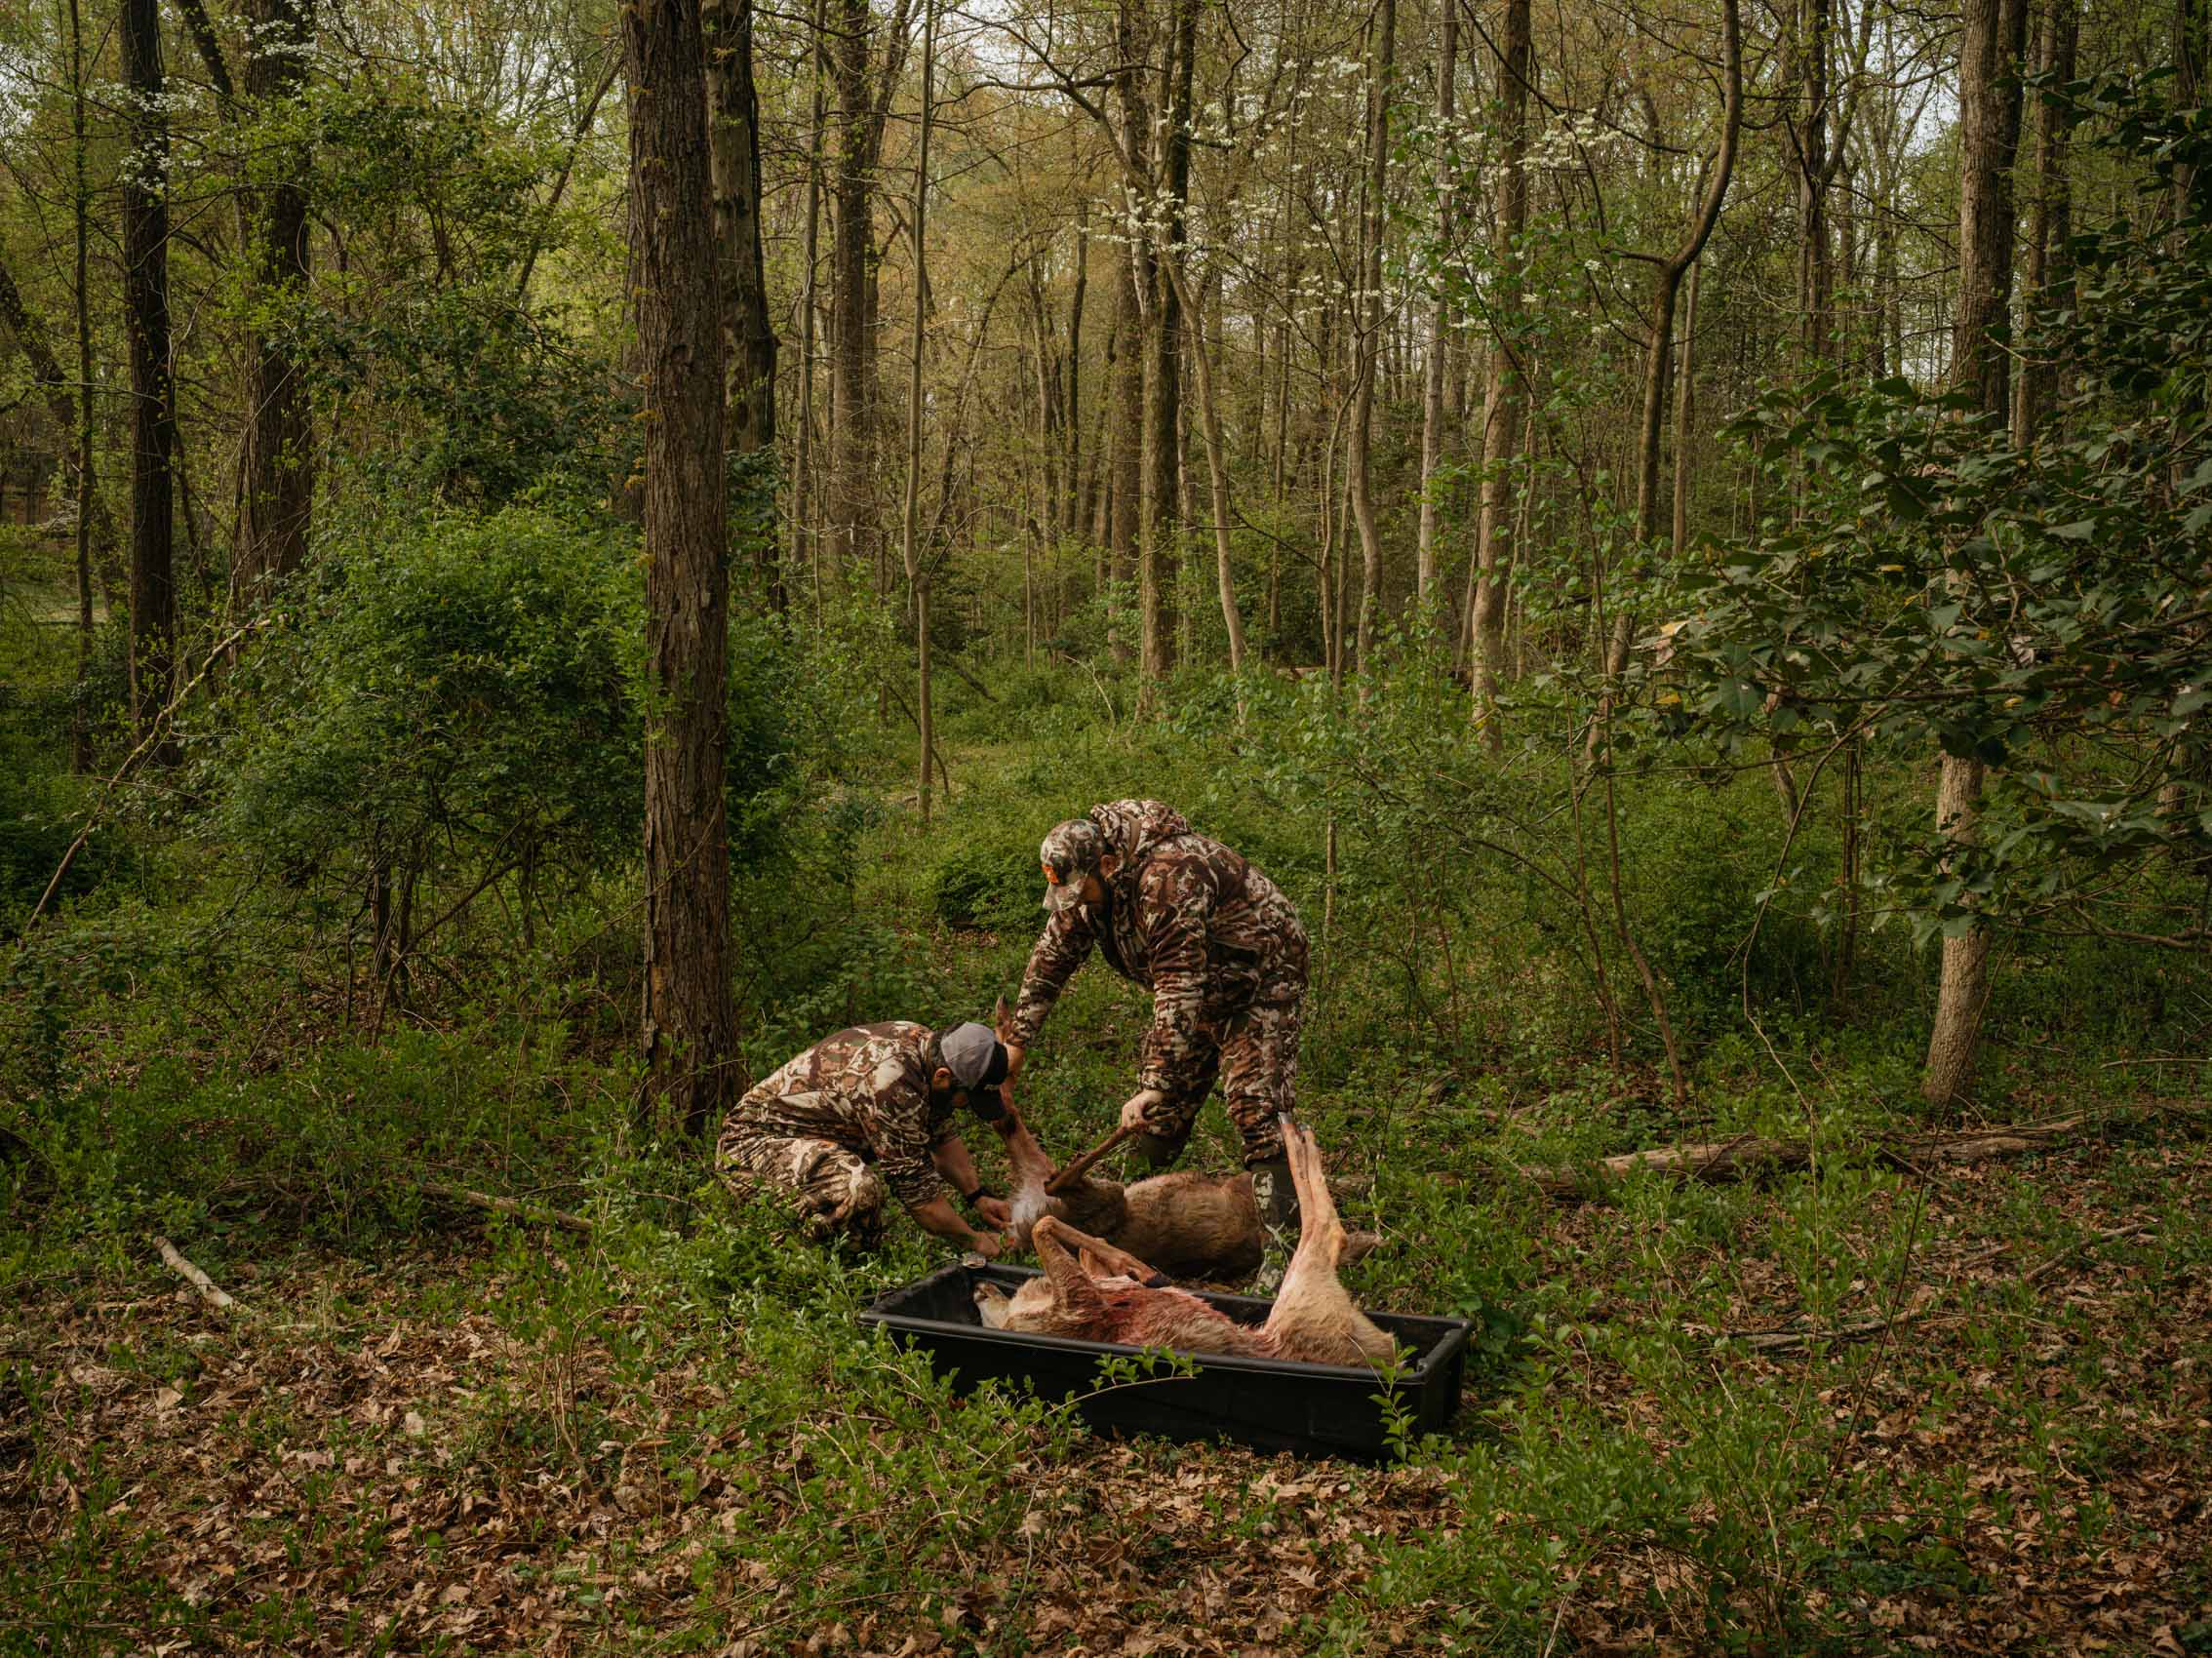 Deer Hunters dressing deer in field